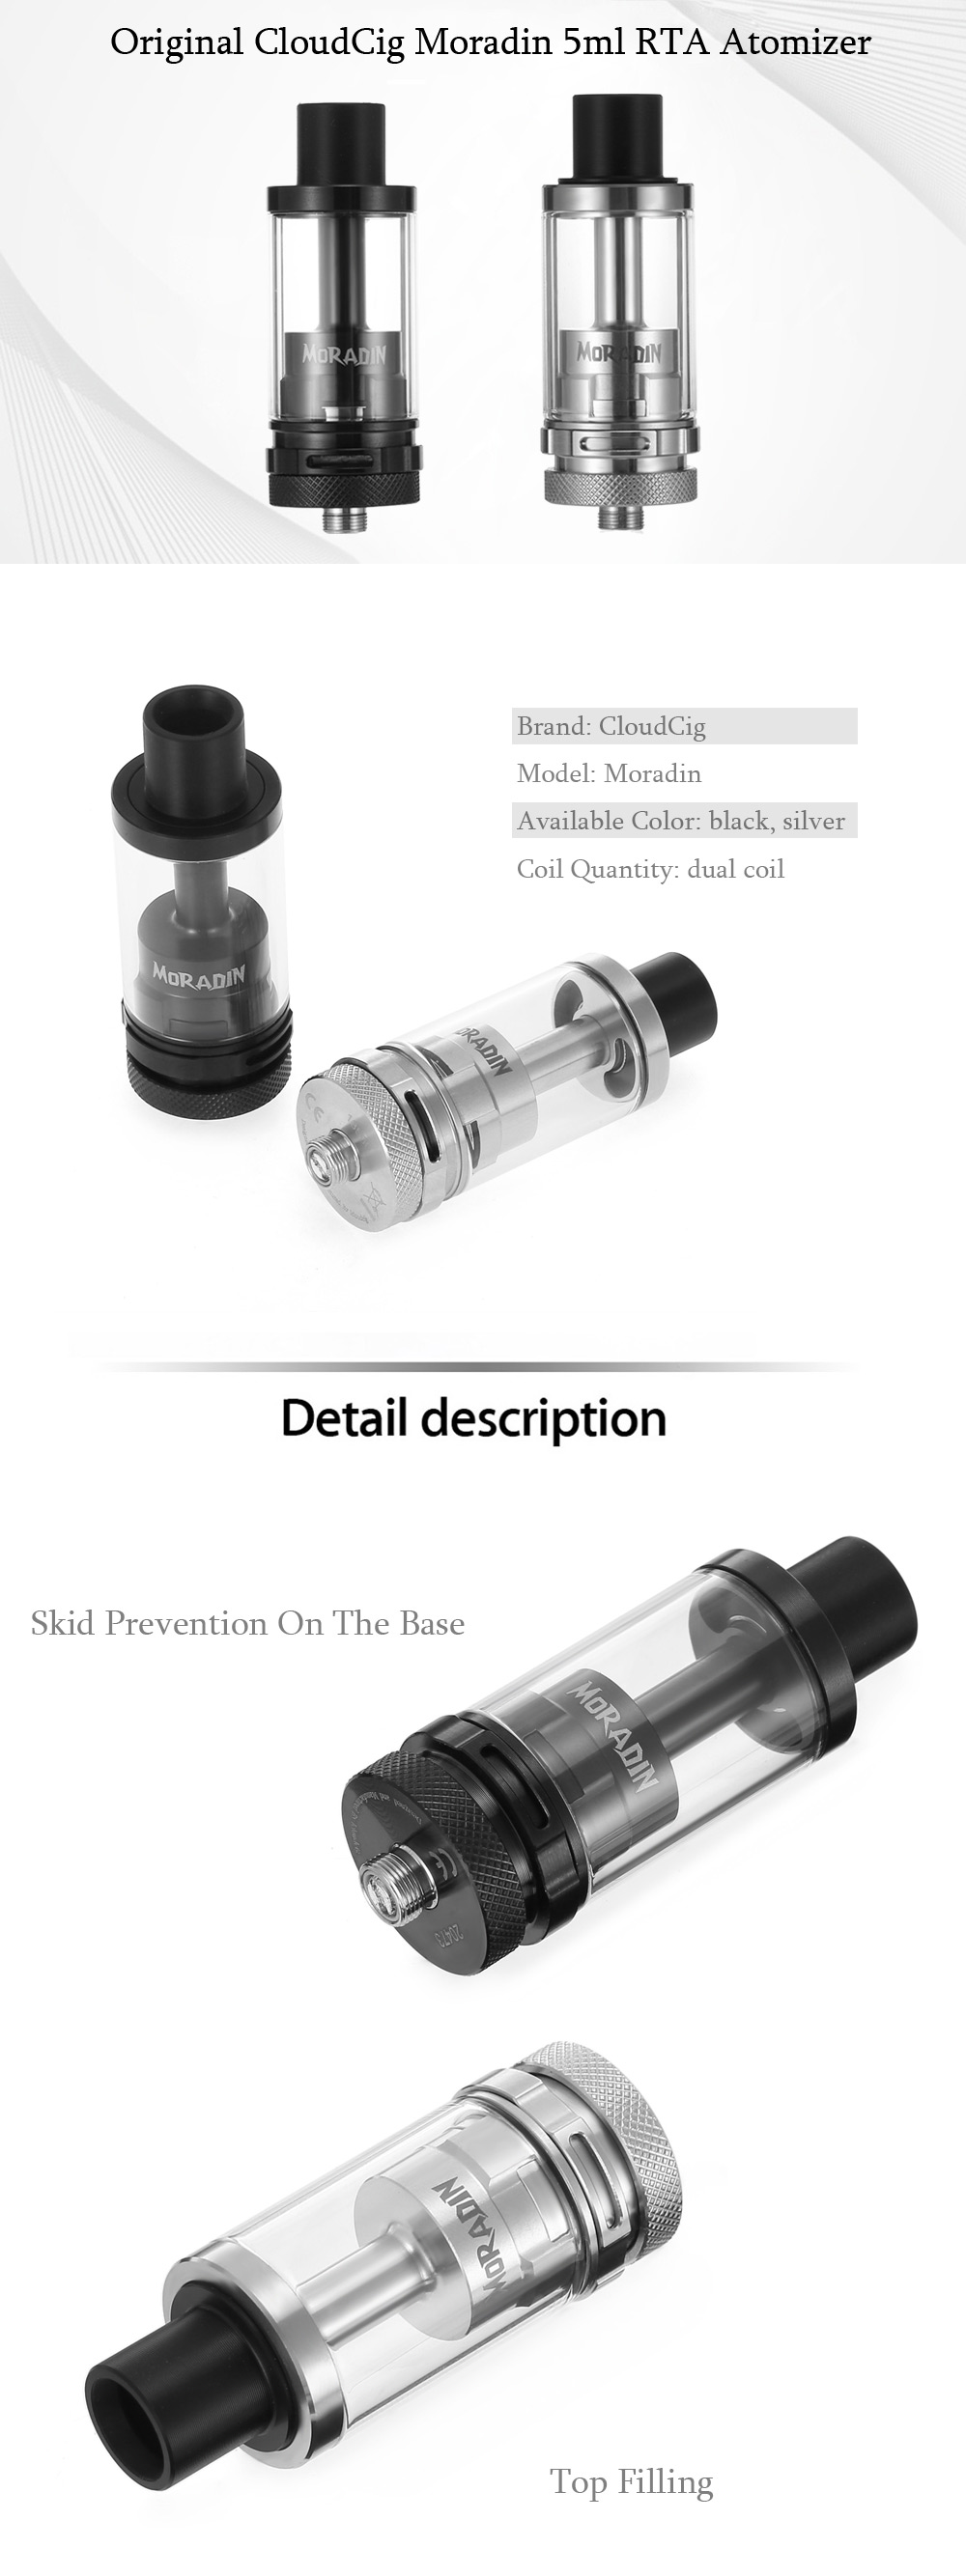 Original CloudCig Moradin 5ml RTA with 2 Air Slots / Exclusively Juice Flow Control System / Top Filling E Cigarette Rebuildable Tank Atomizer